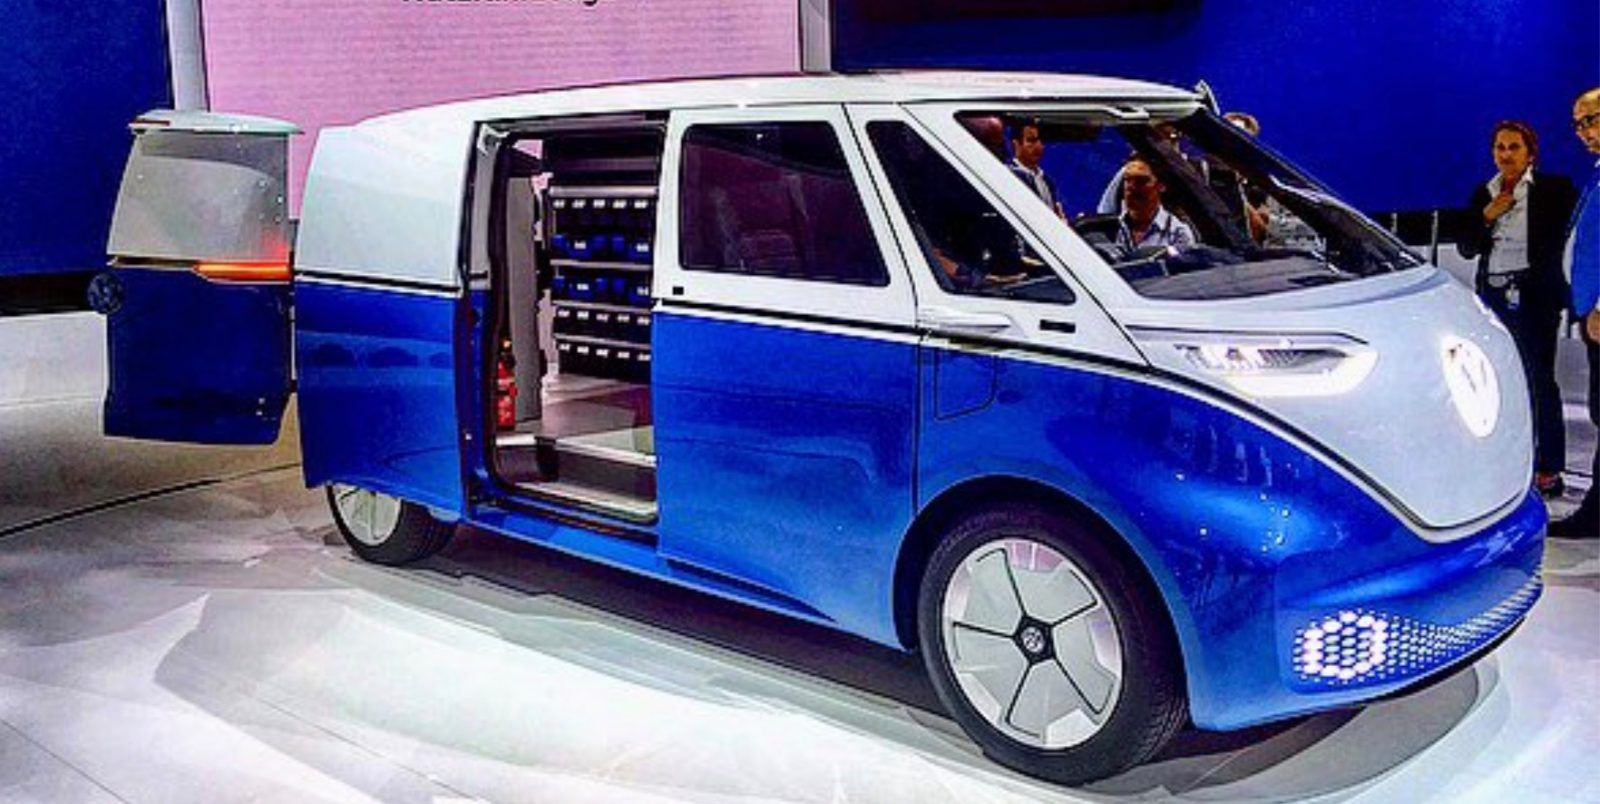 Vw Unveils A Series Of New Commercial All Electric Vehicles I D Buzz Cargo E Cabby Cargo E Bike And More Electric Cars Commercial Vehicle Vehicles